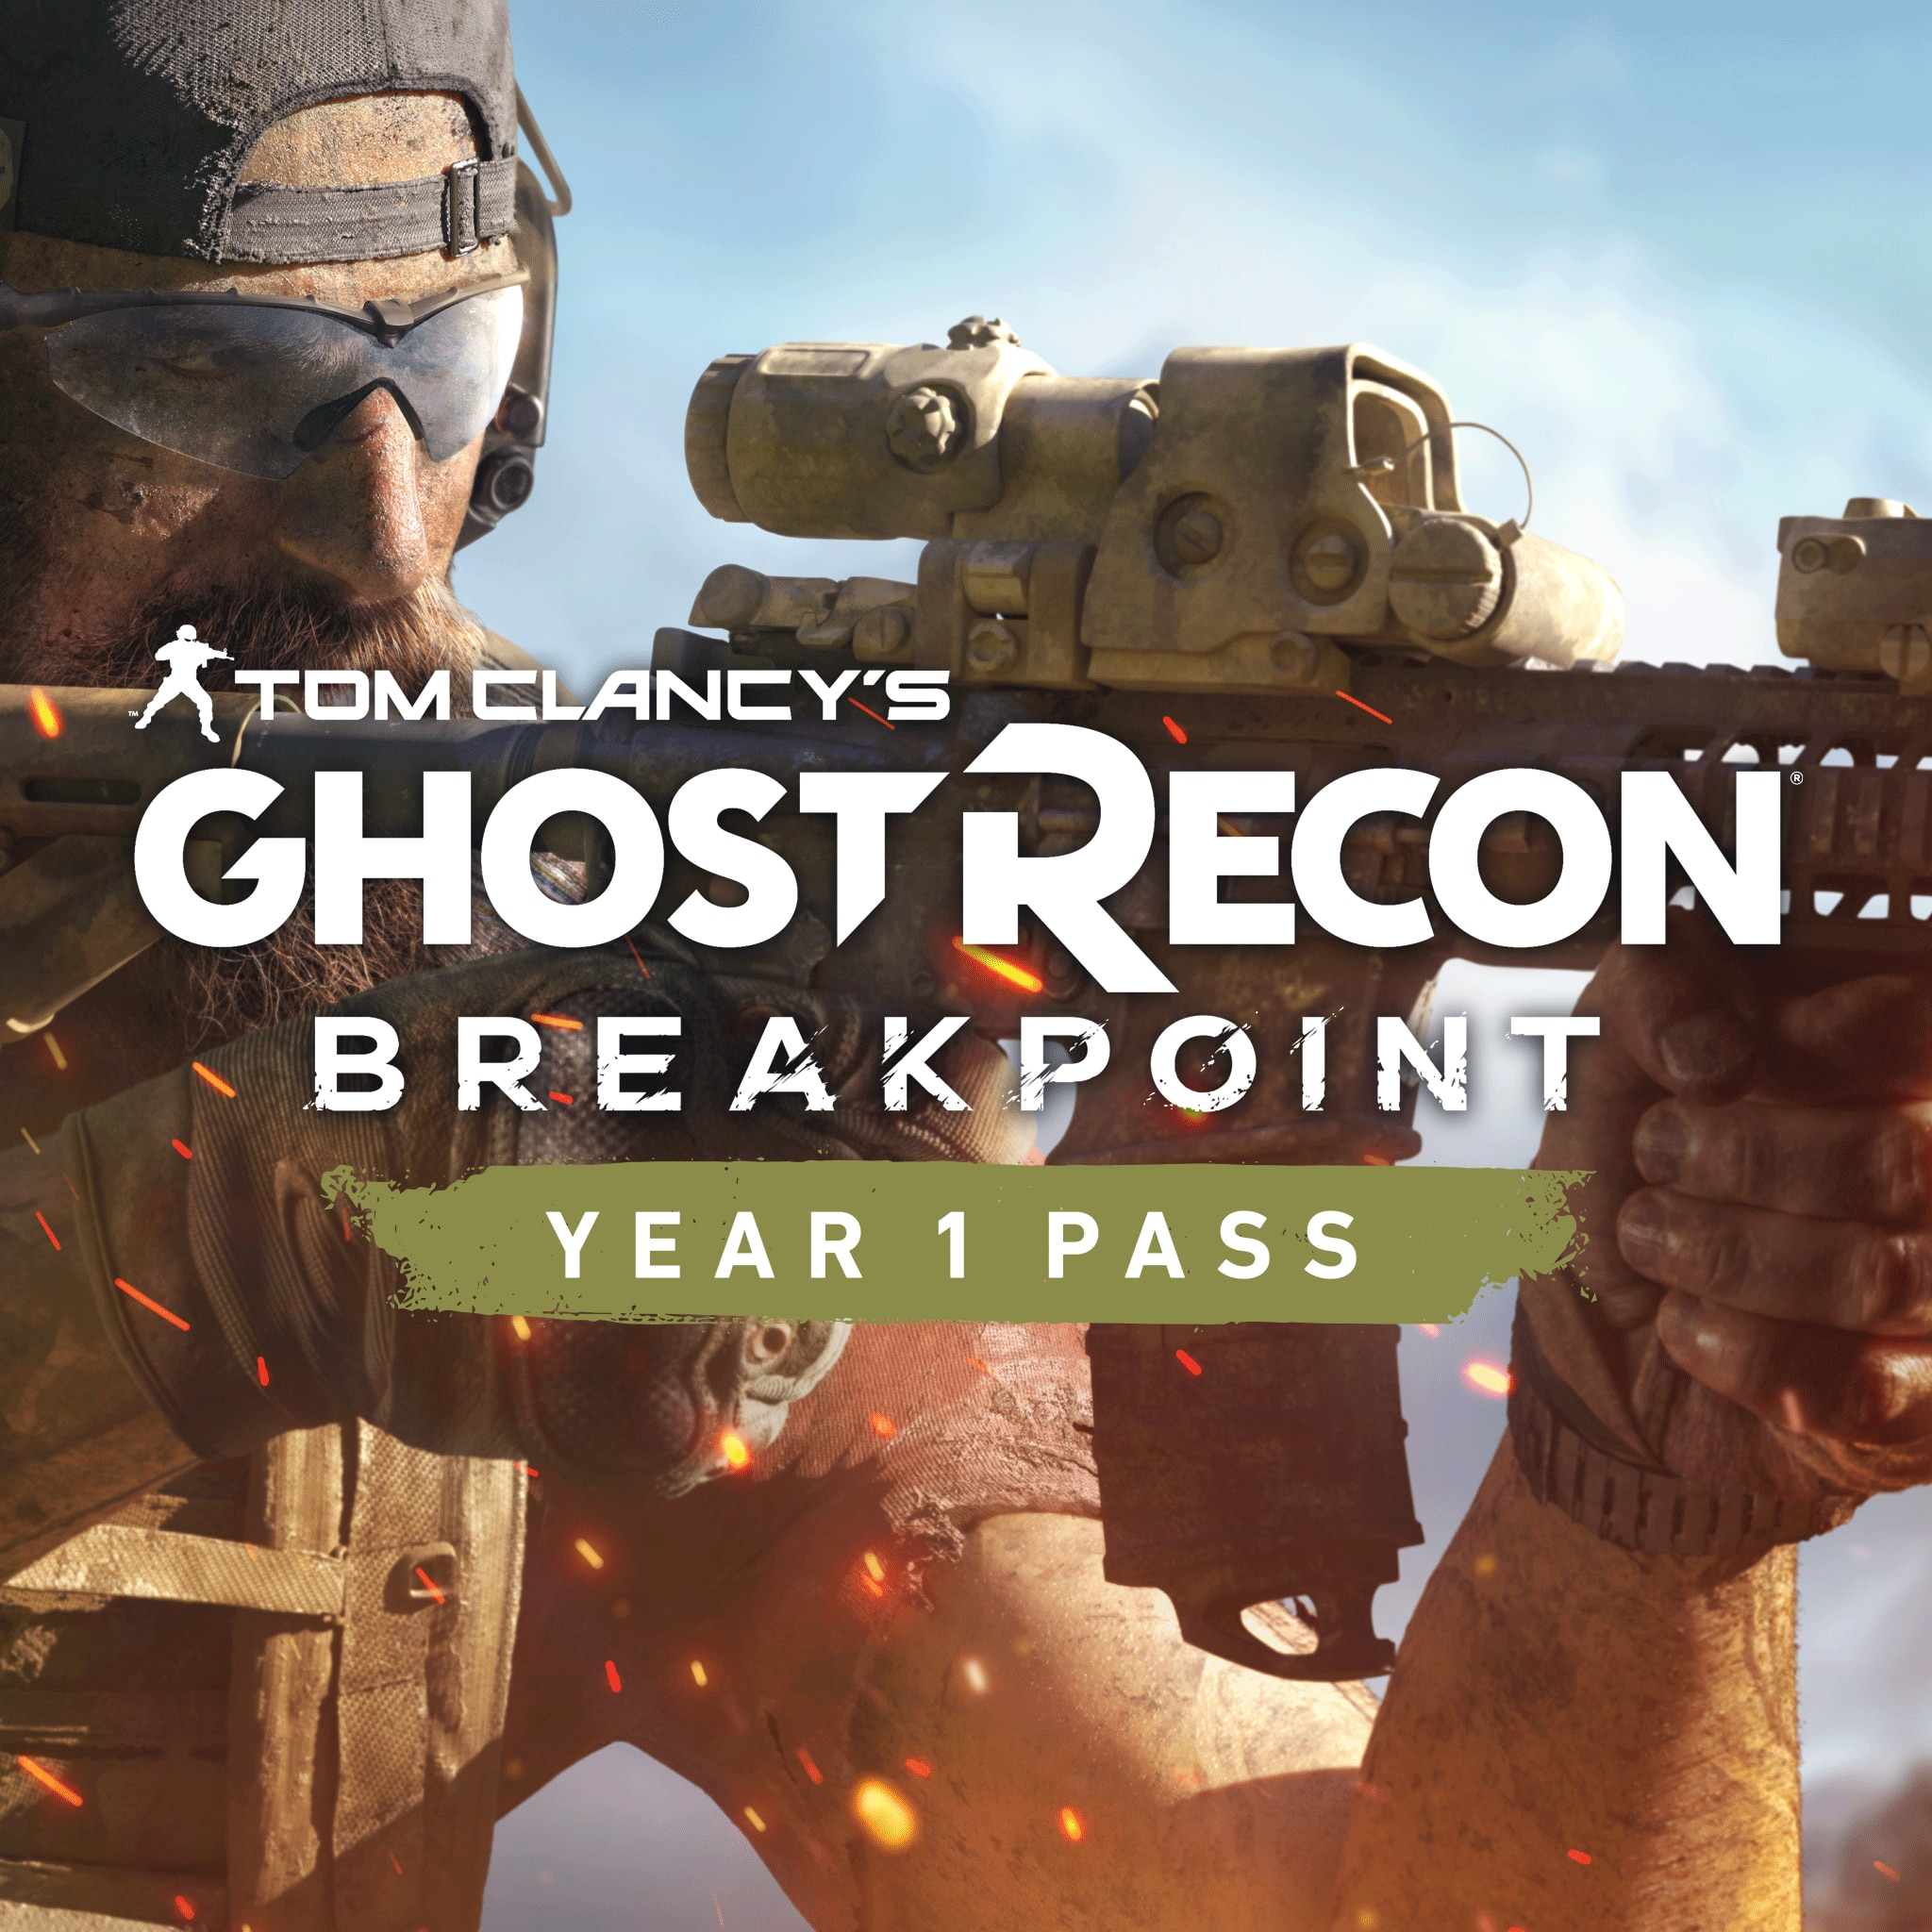 Ghost Recon Breakpoint - Year 1 Pass